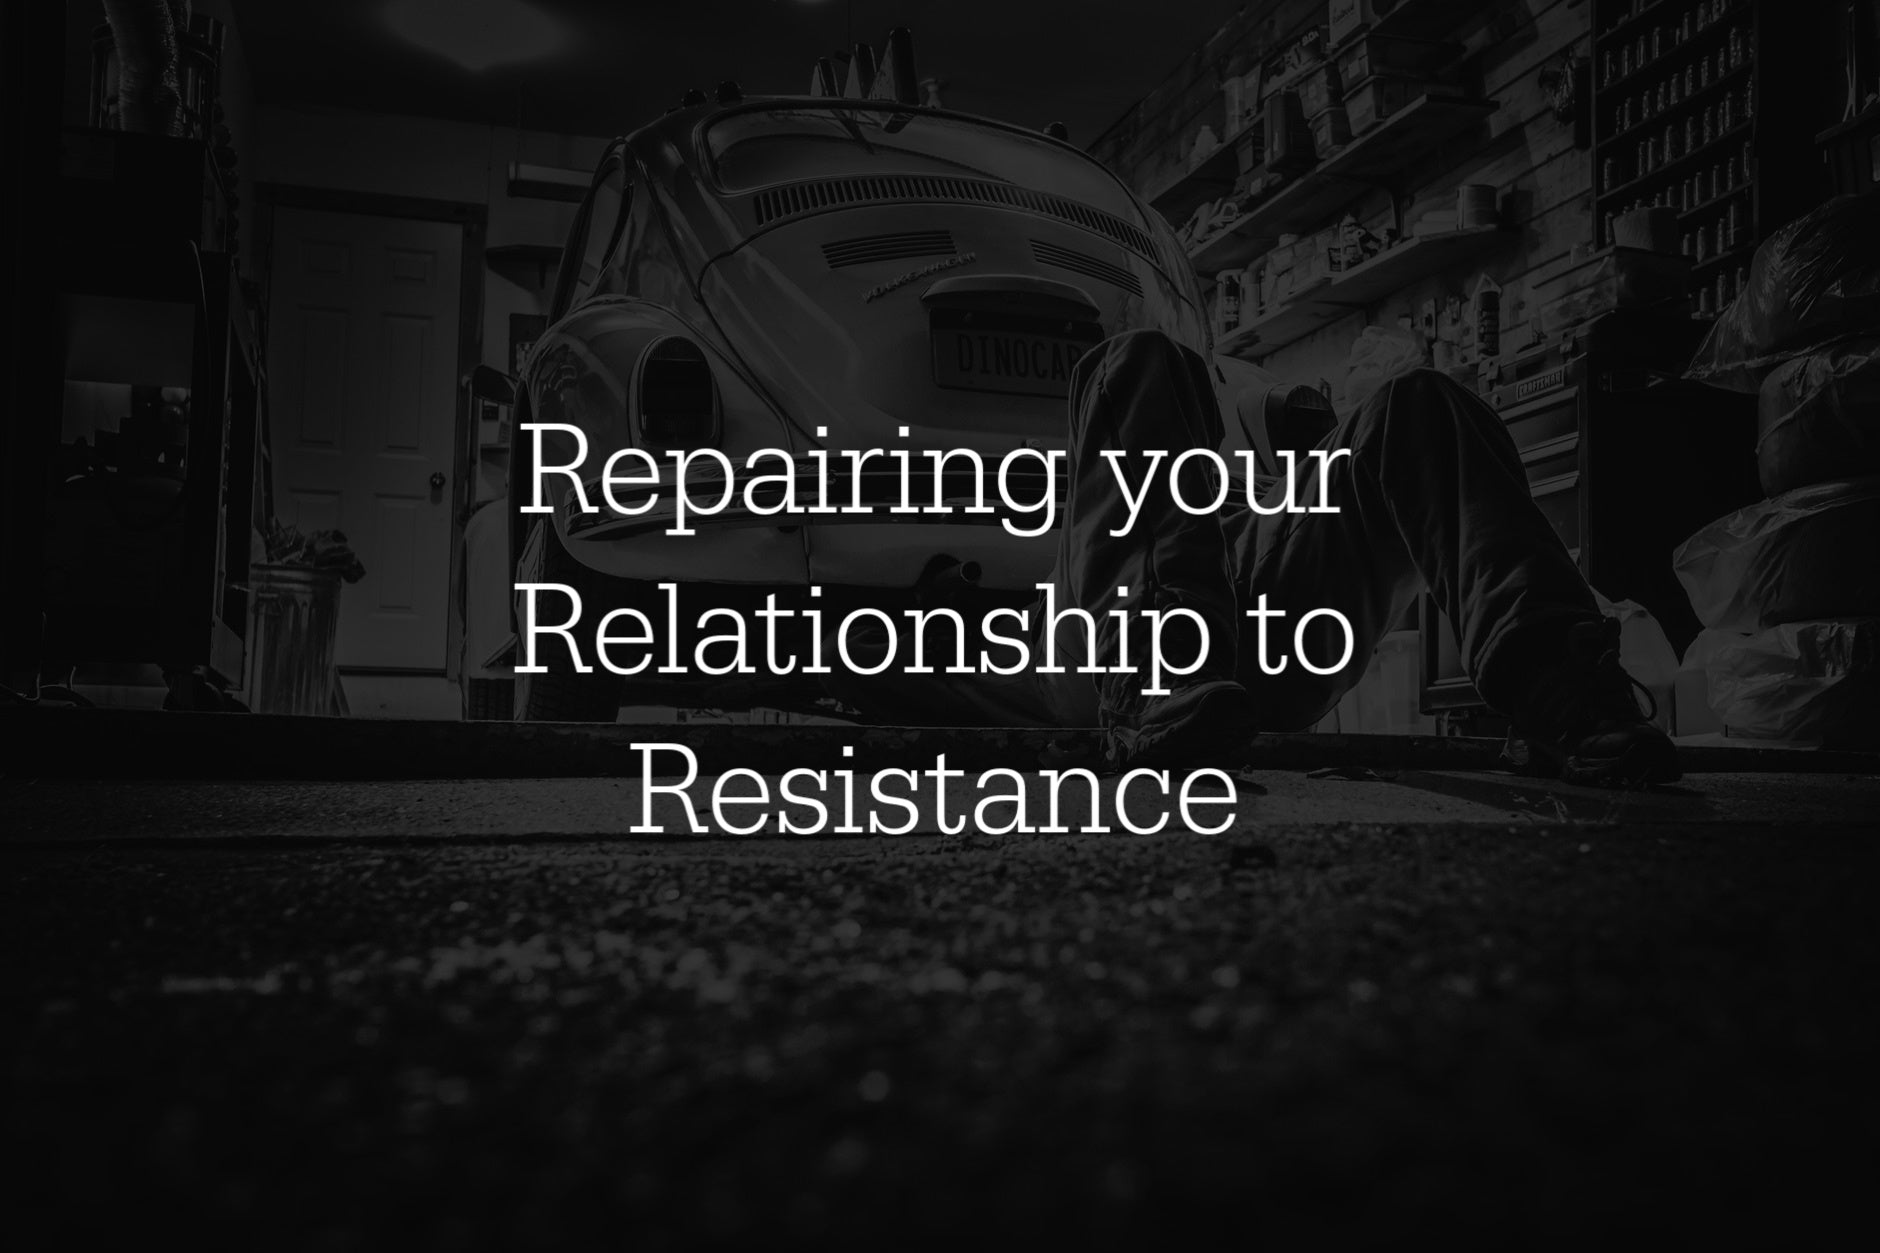 Repairing your relationship to resistance